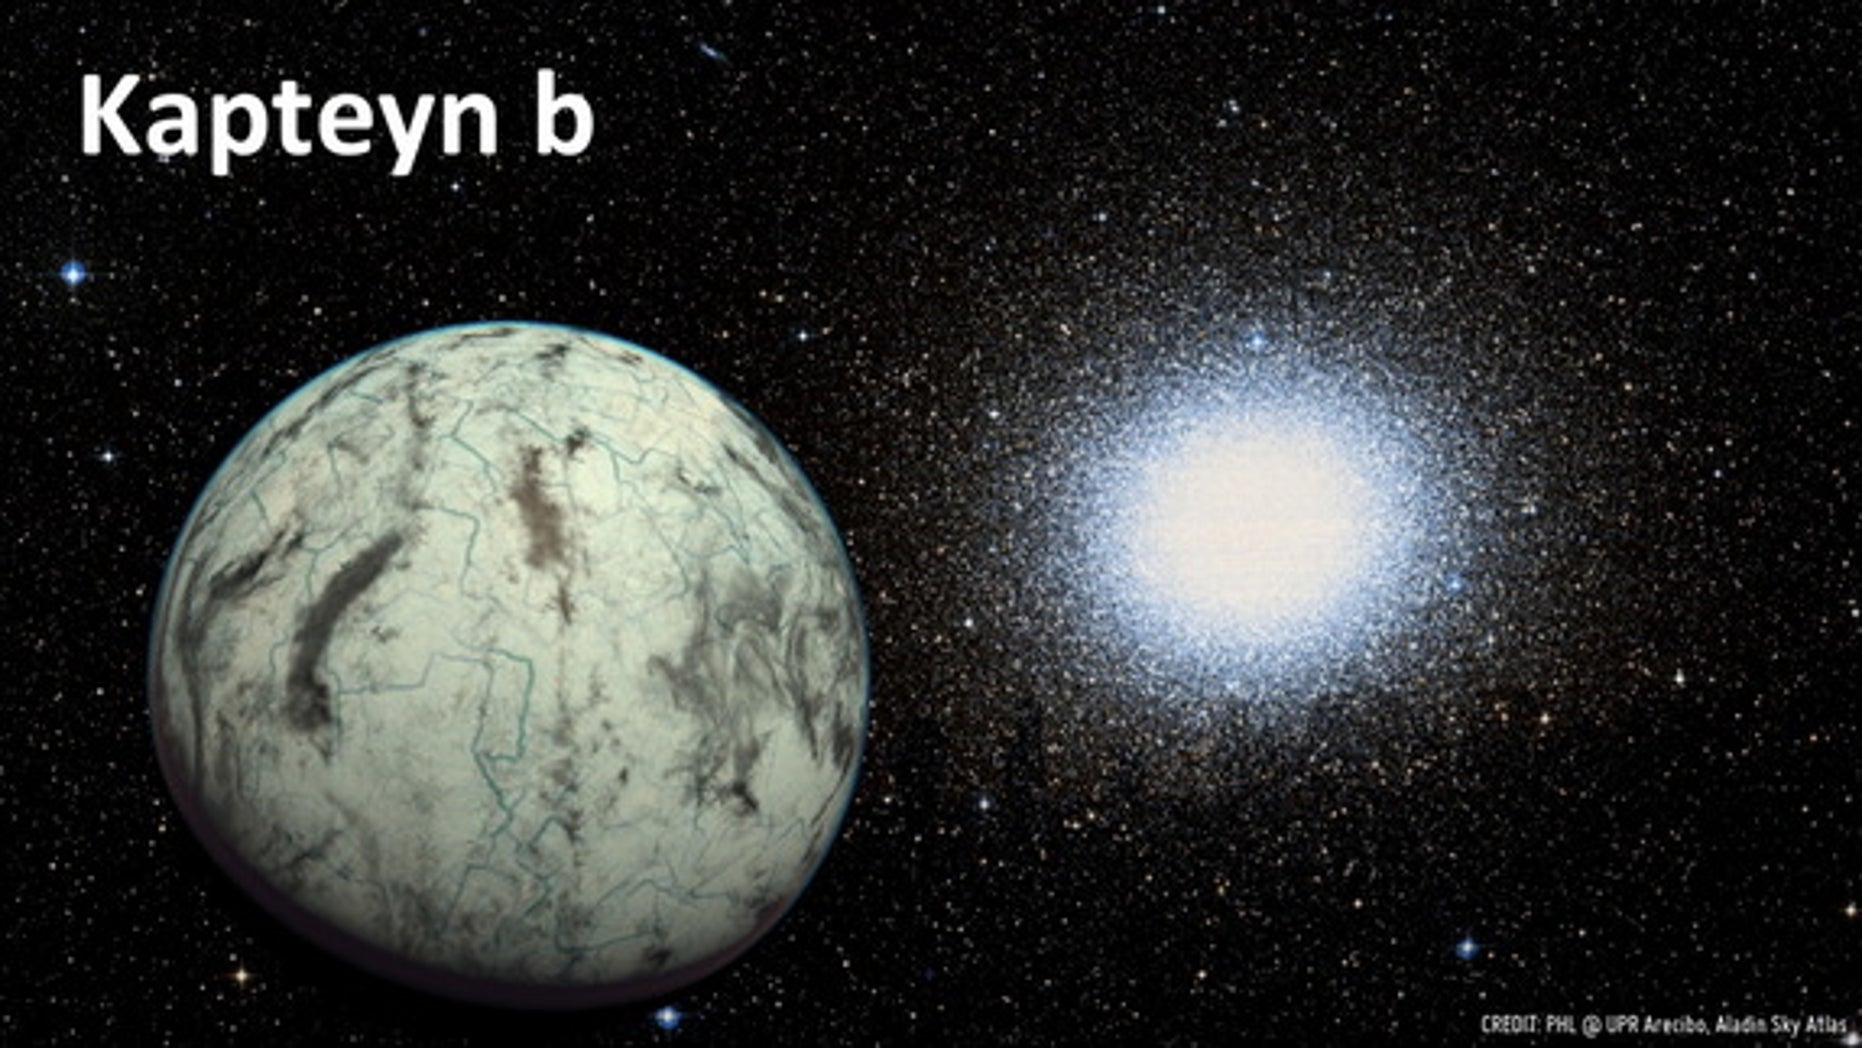 Artistic representation of the potentially habitable world Kapteyn b with the globular cluster Omega Centauri in the background. It is believed that the Omega Centauri is the remaining core of a dwarf galaxy that merged with our own galaxy bill.